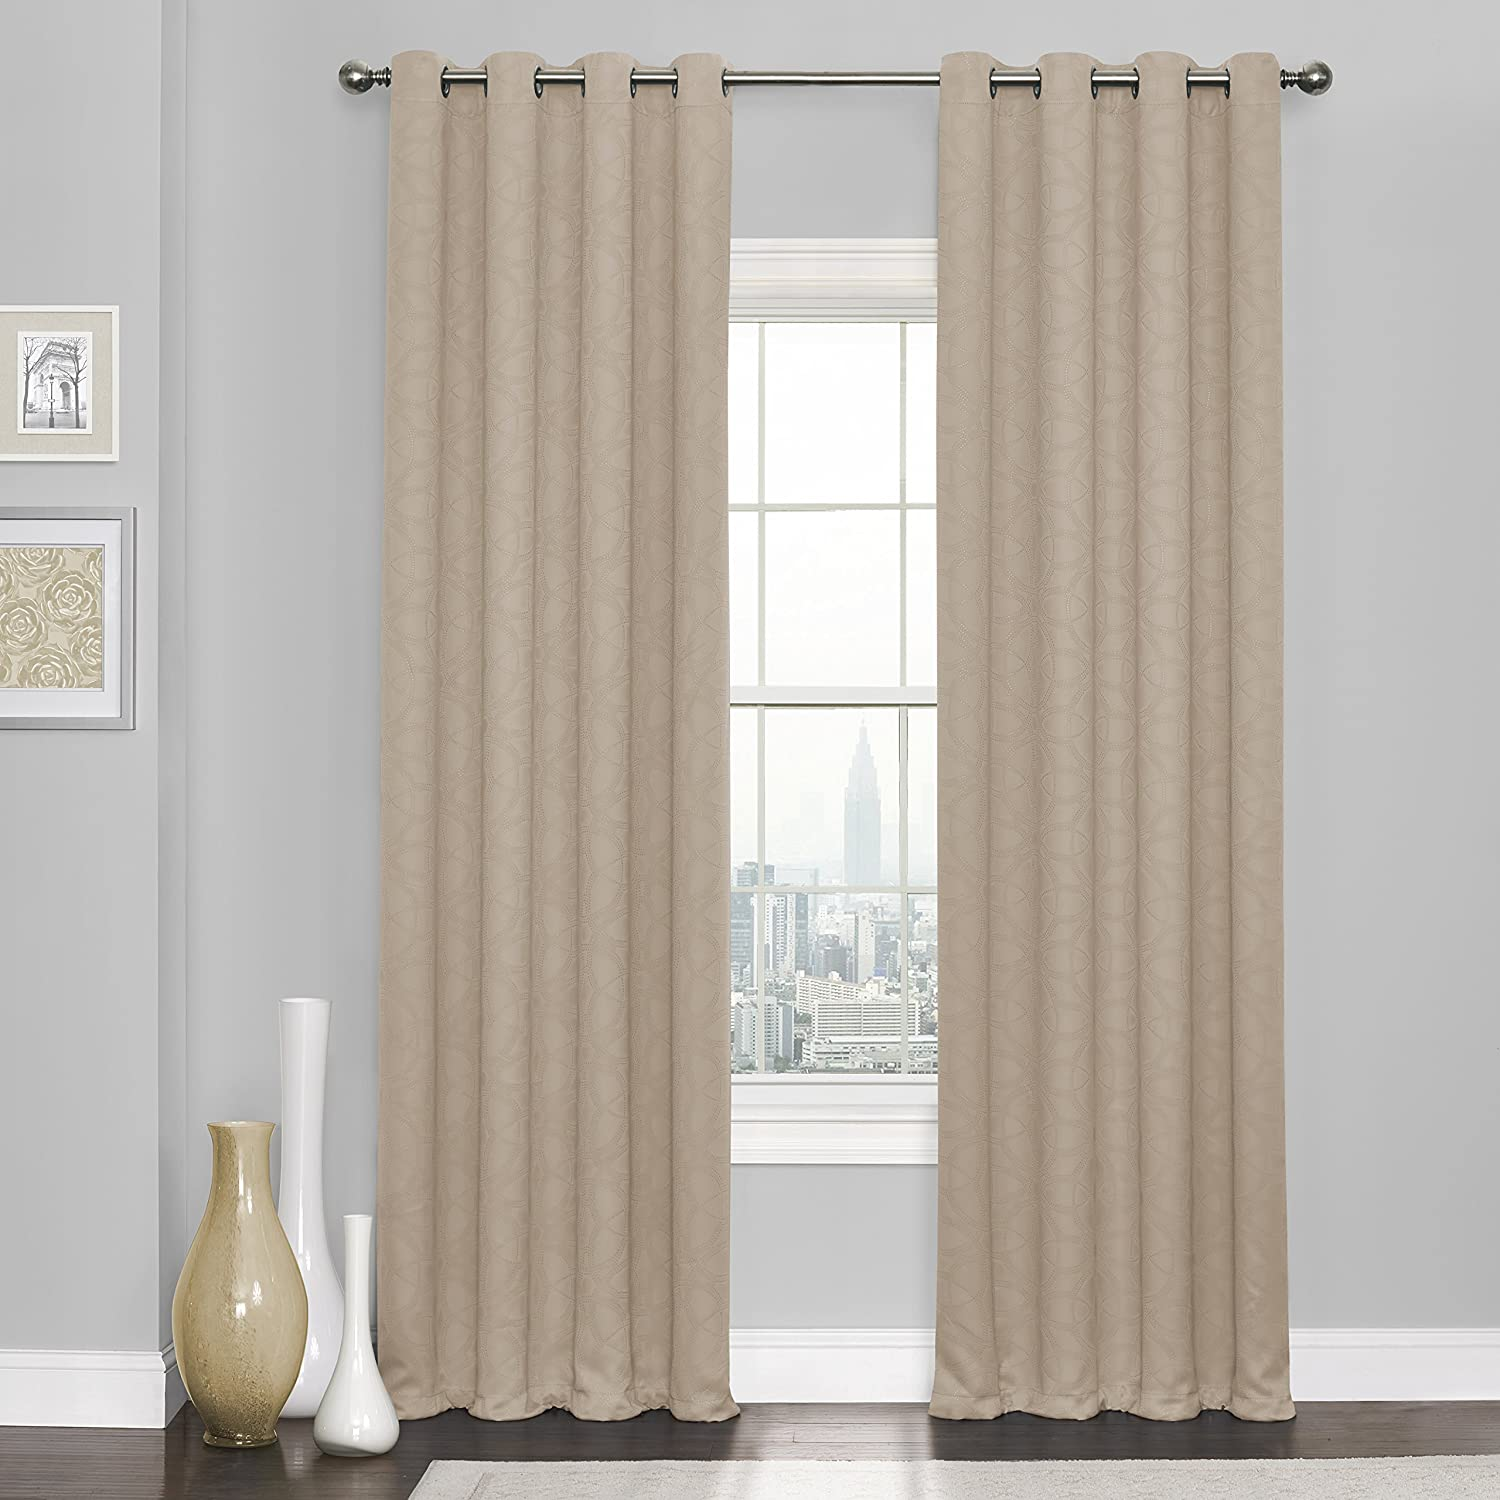 Amazon Com Eclipse Blackout Curtains For Bedroom Kingston 52 X 84 Insulated Darkening Single Panel Grommet Top Window Treatment Living Room Natural Home Kitchen